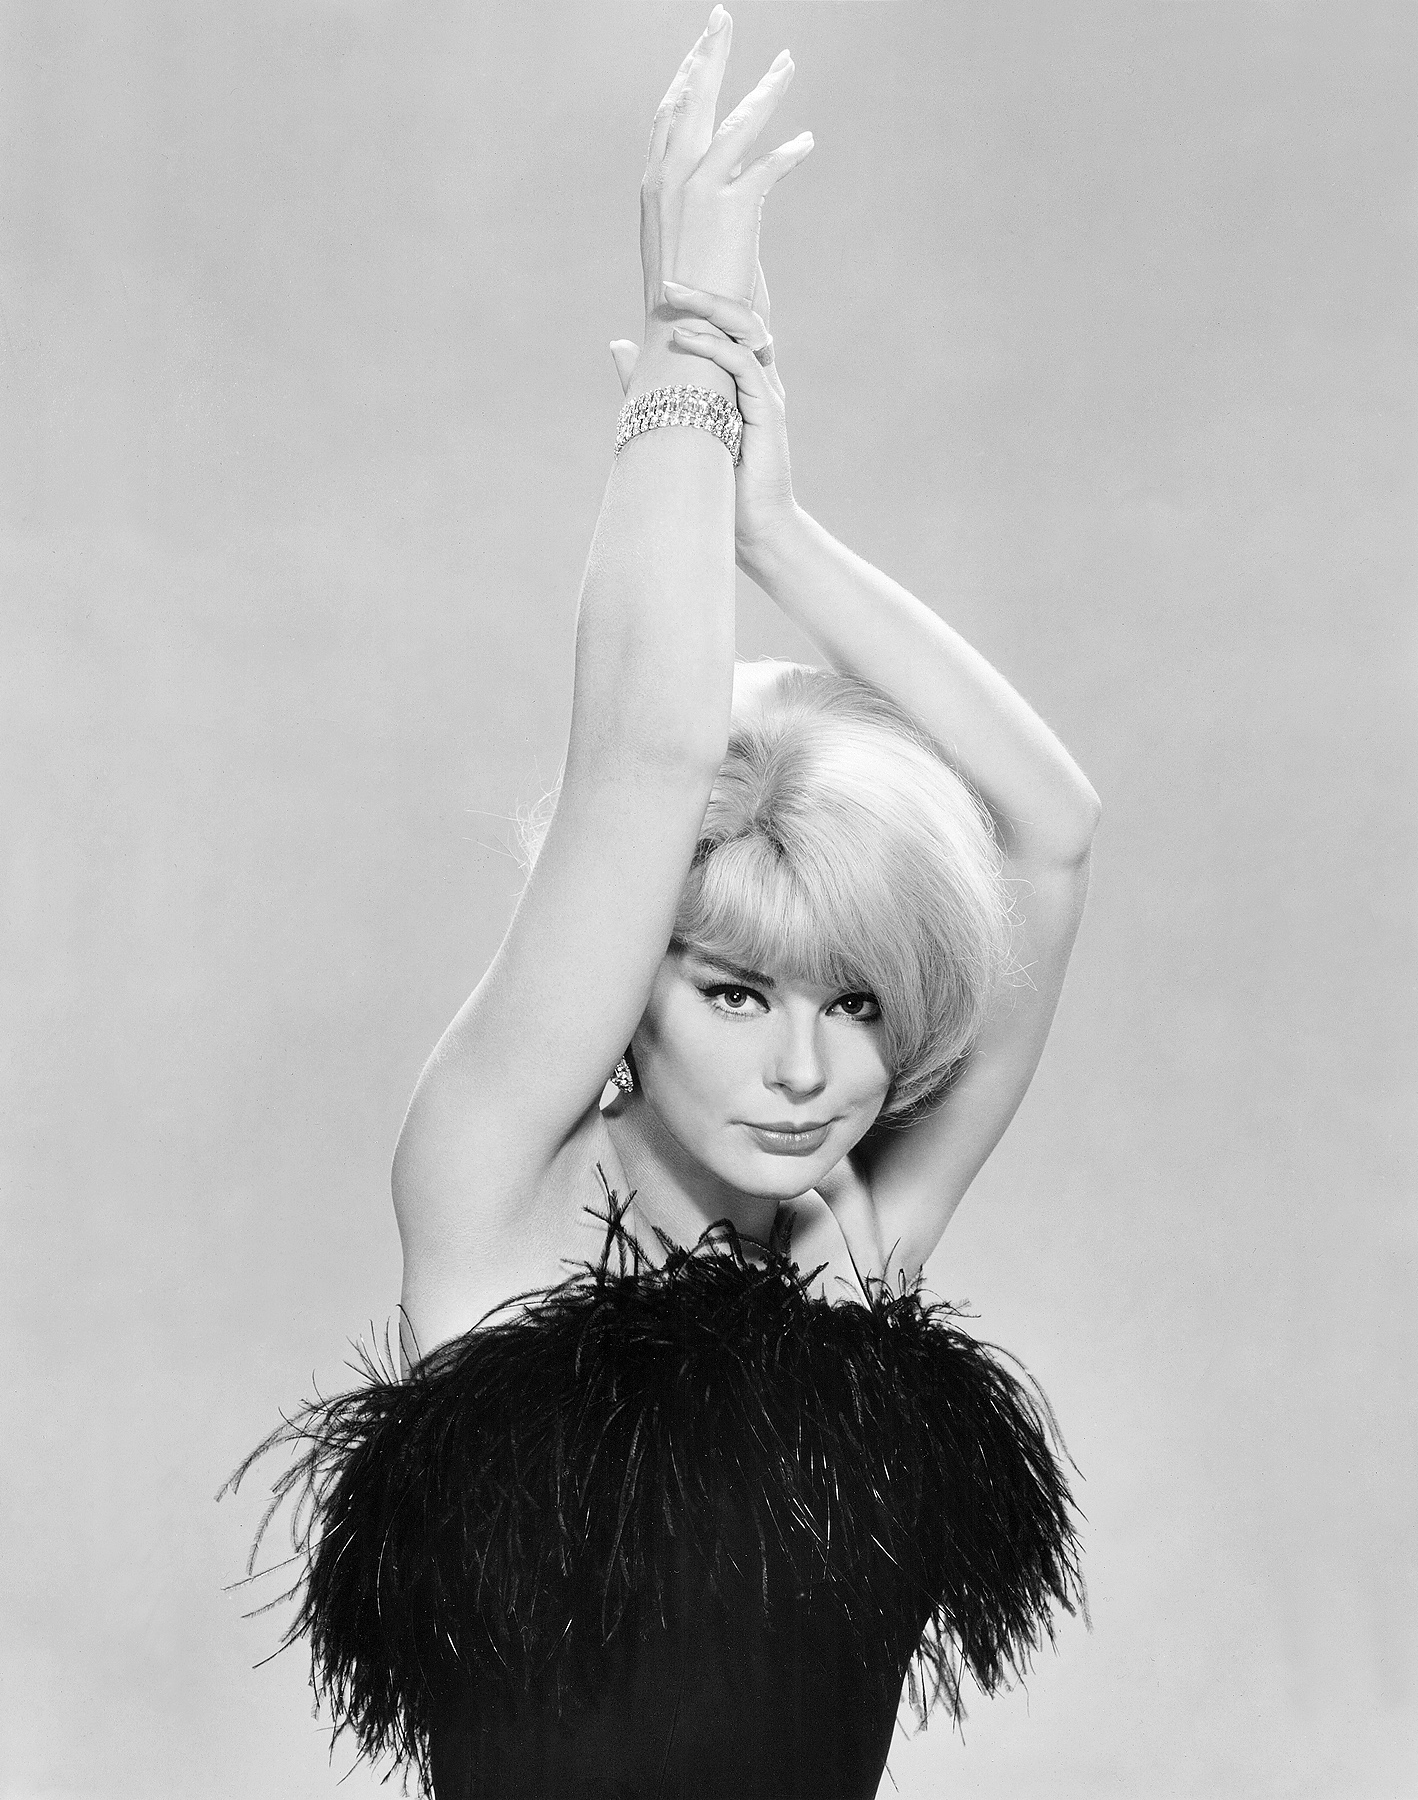 elke sommer 2014elke sommer quotes, elke sommer artist, elke sommer, elke sommer paintings, elke sommer imdb, elke sommer wiki, elke sommer wikipedia, elke sommer filmography, elke sommer today, elke sommer playboy, elke sommer net worth, elke sommer movies, elke sommer feet, elke sommer measurements, elke sommer bilder, elke sommer hot, elke sommer heute, elke sommer 2015, elke sommer images, elke sommer 2014